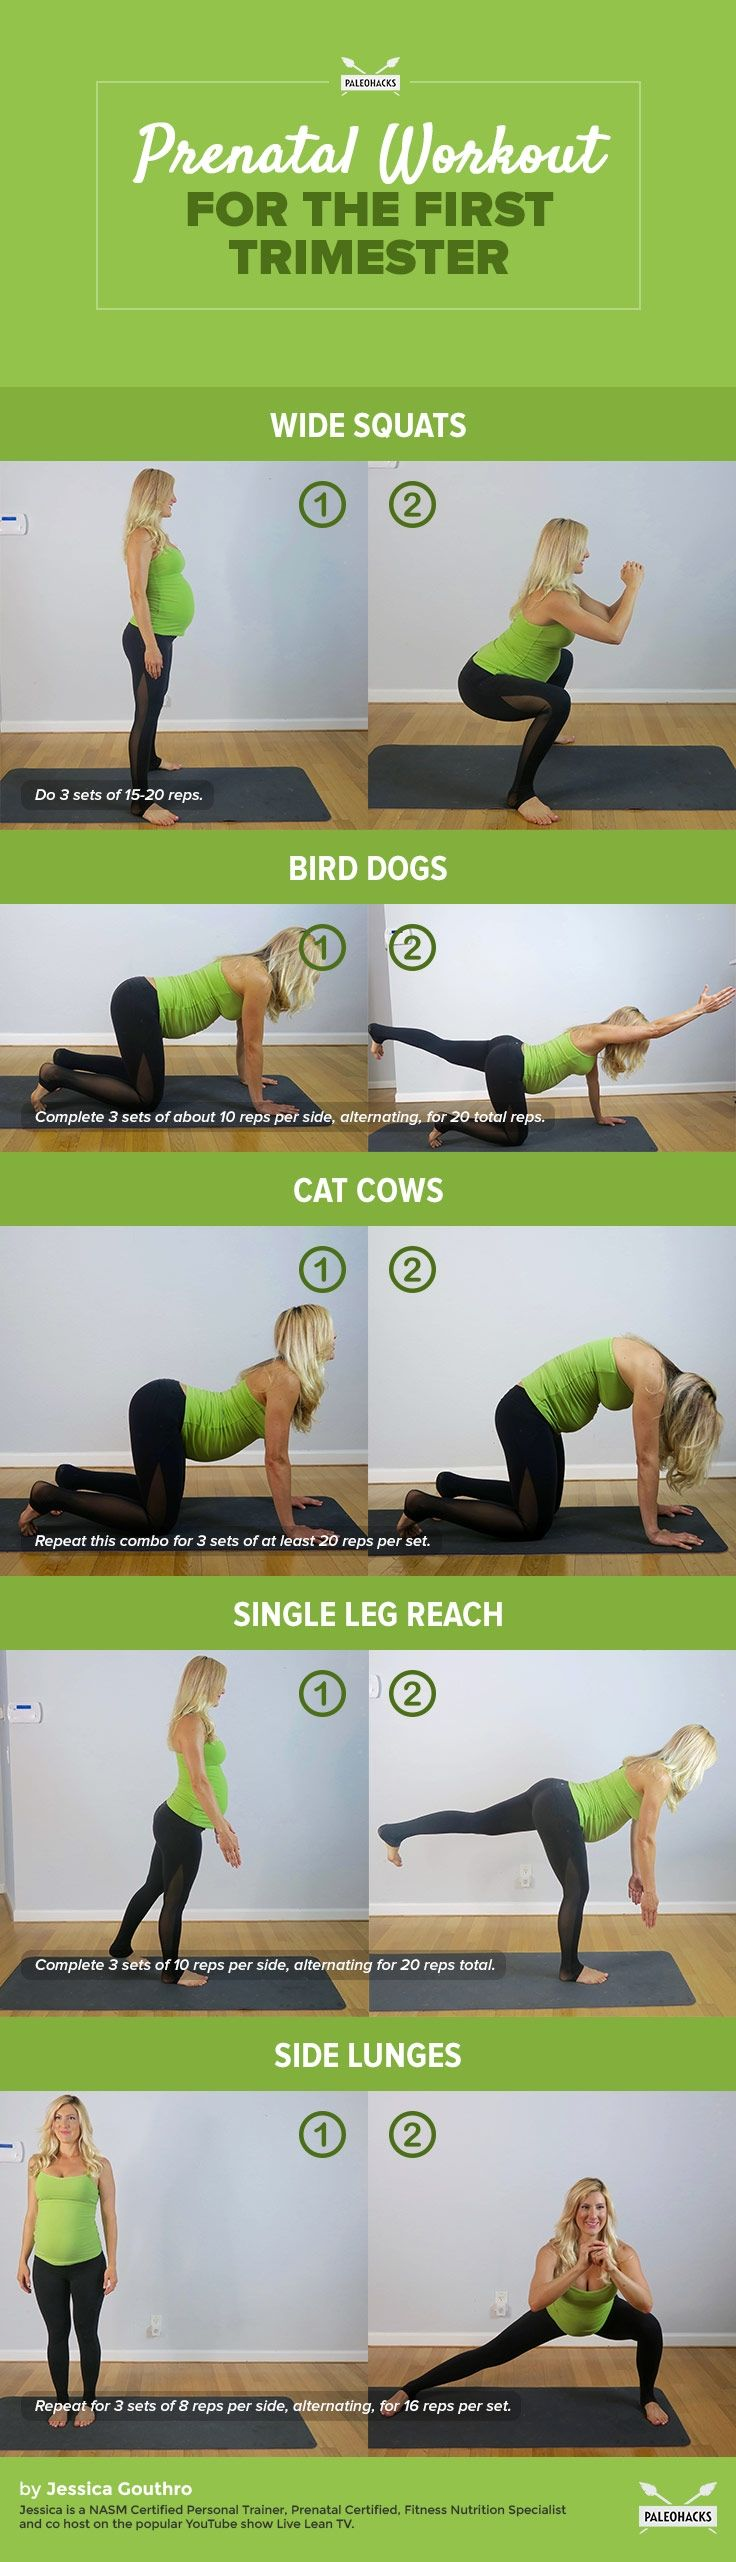 Do\u2019s and Don\u2019ts: Prenatal Workout Safety for the First Trimester. There are SO many exercises that are wonderful for both moms and babies, and I encourage you (or your clients) to stay active throughout the full term\u2014but of course, in a safe and smart way. There are certainly some types and modalities of exercise that you should avoid, but we\u2019ll get to that at the end of this article. For the full article visit us here: http://paleo.co/prenatalworkout…